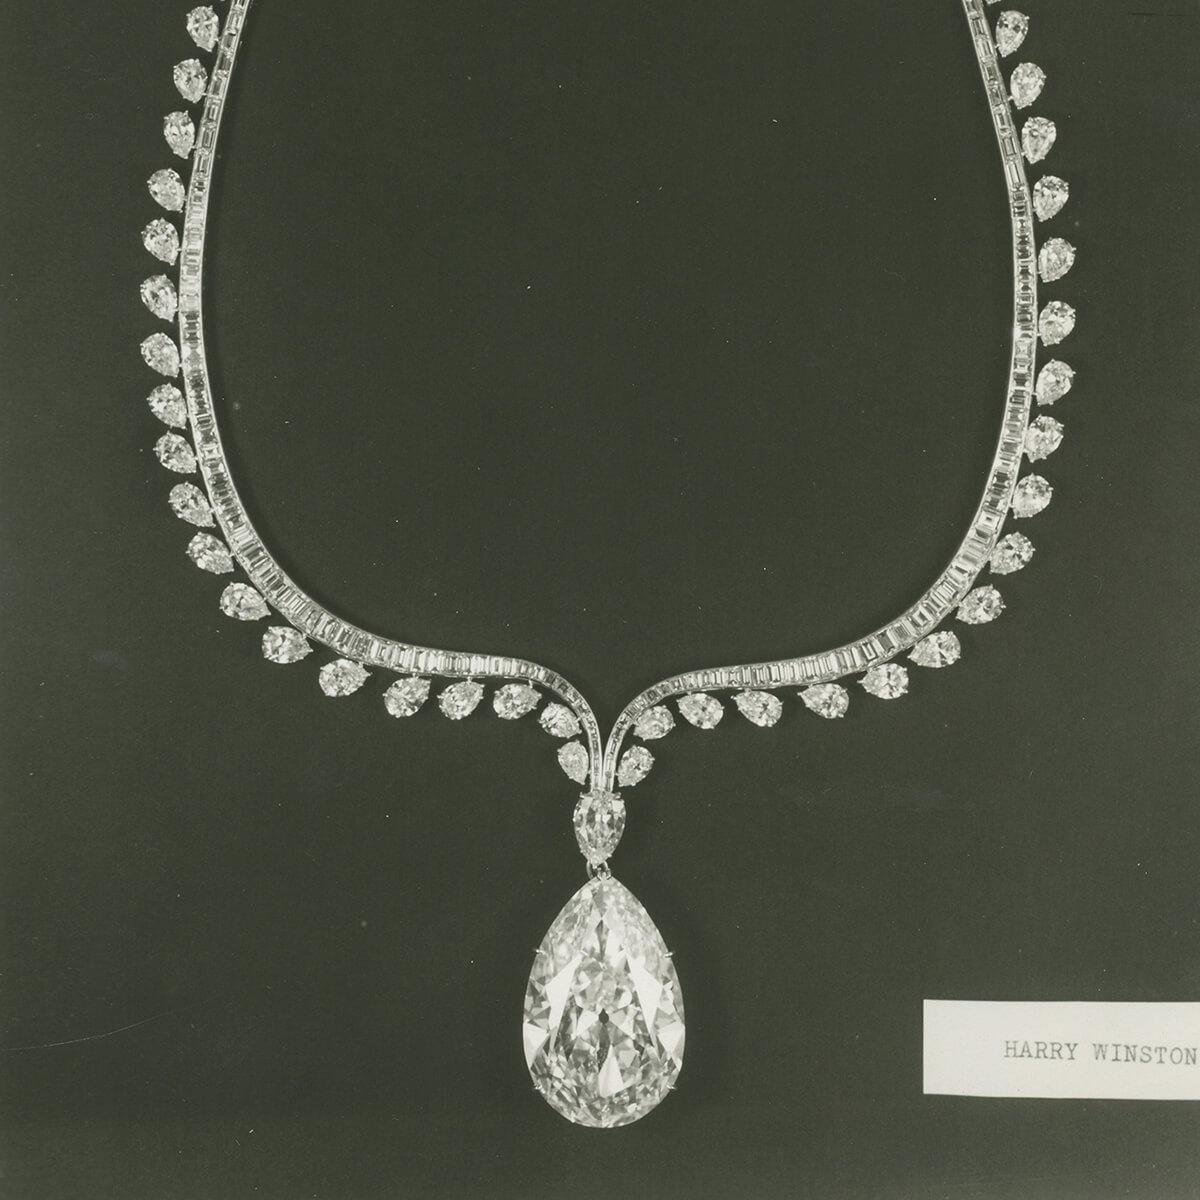 Black and white image of The Winston Diamond set in a necklace